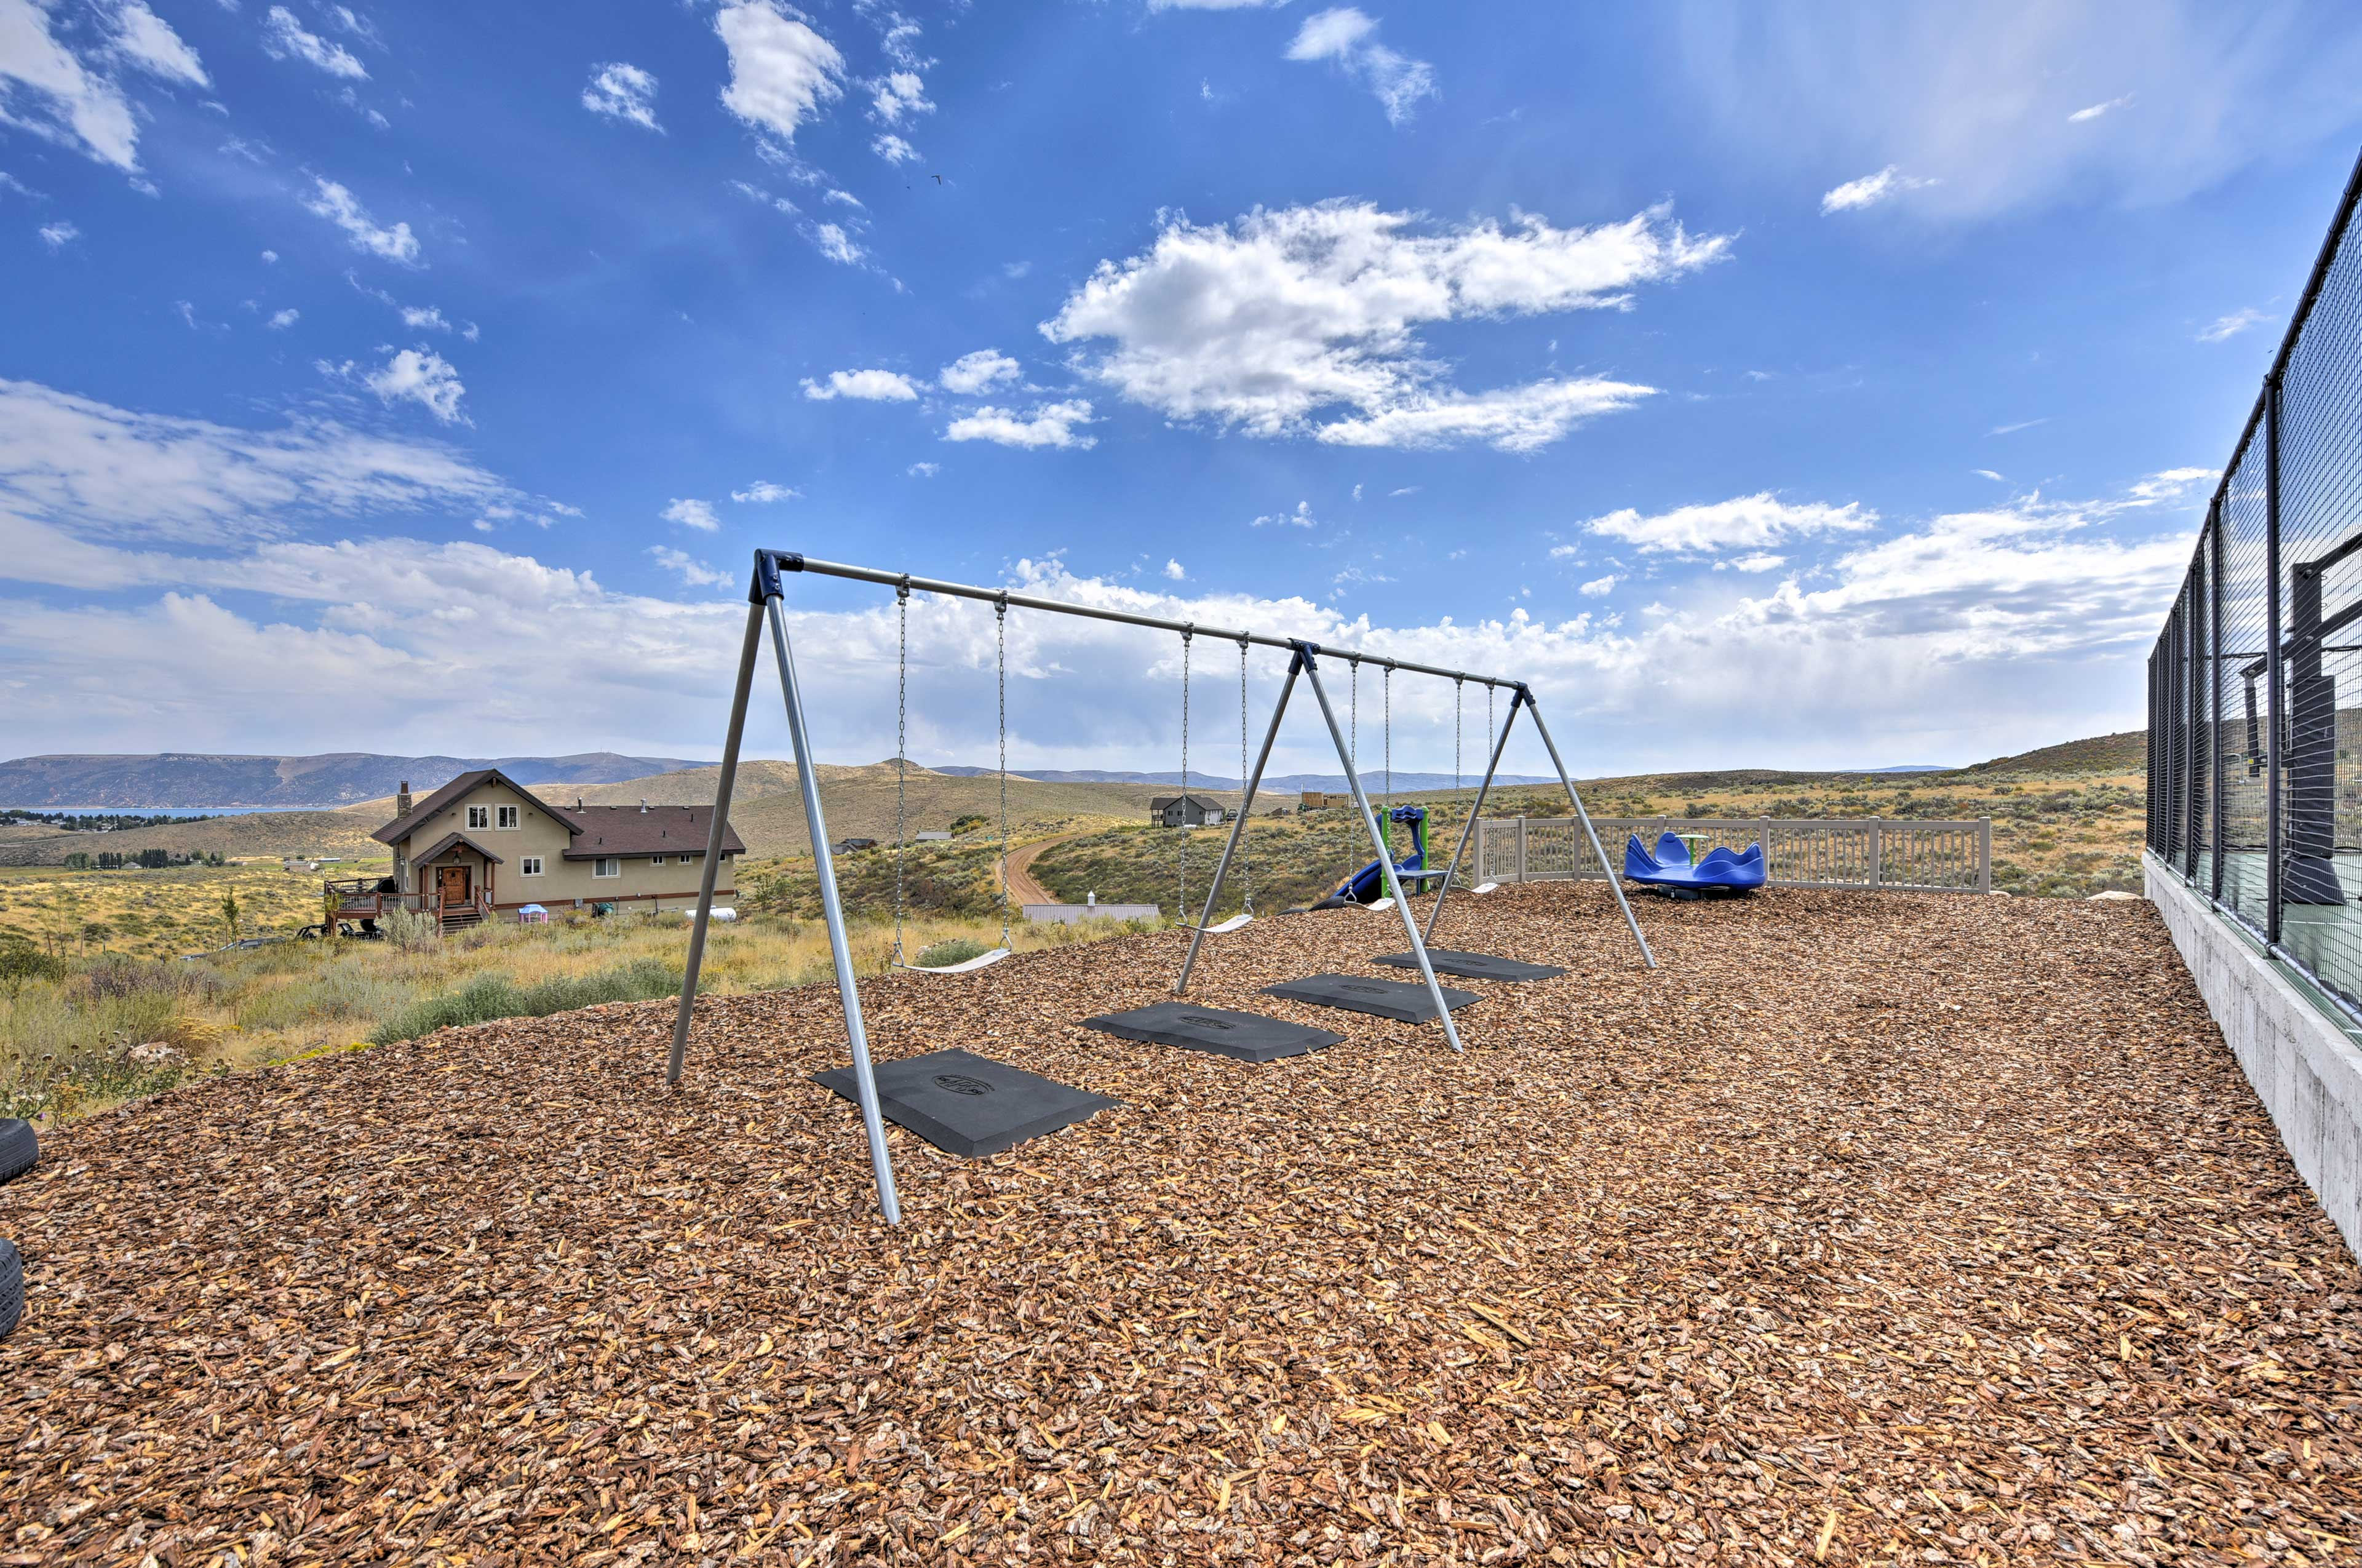 Let the kids have some fun in the playground.